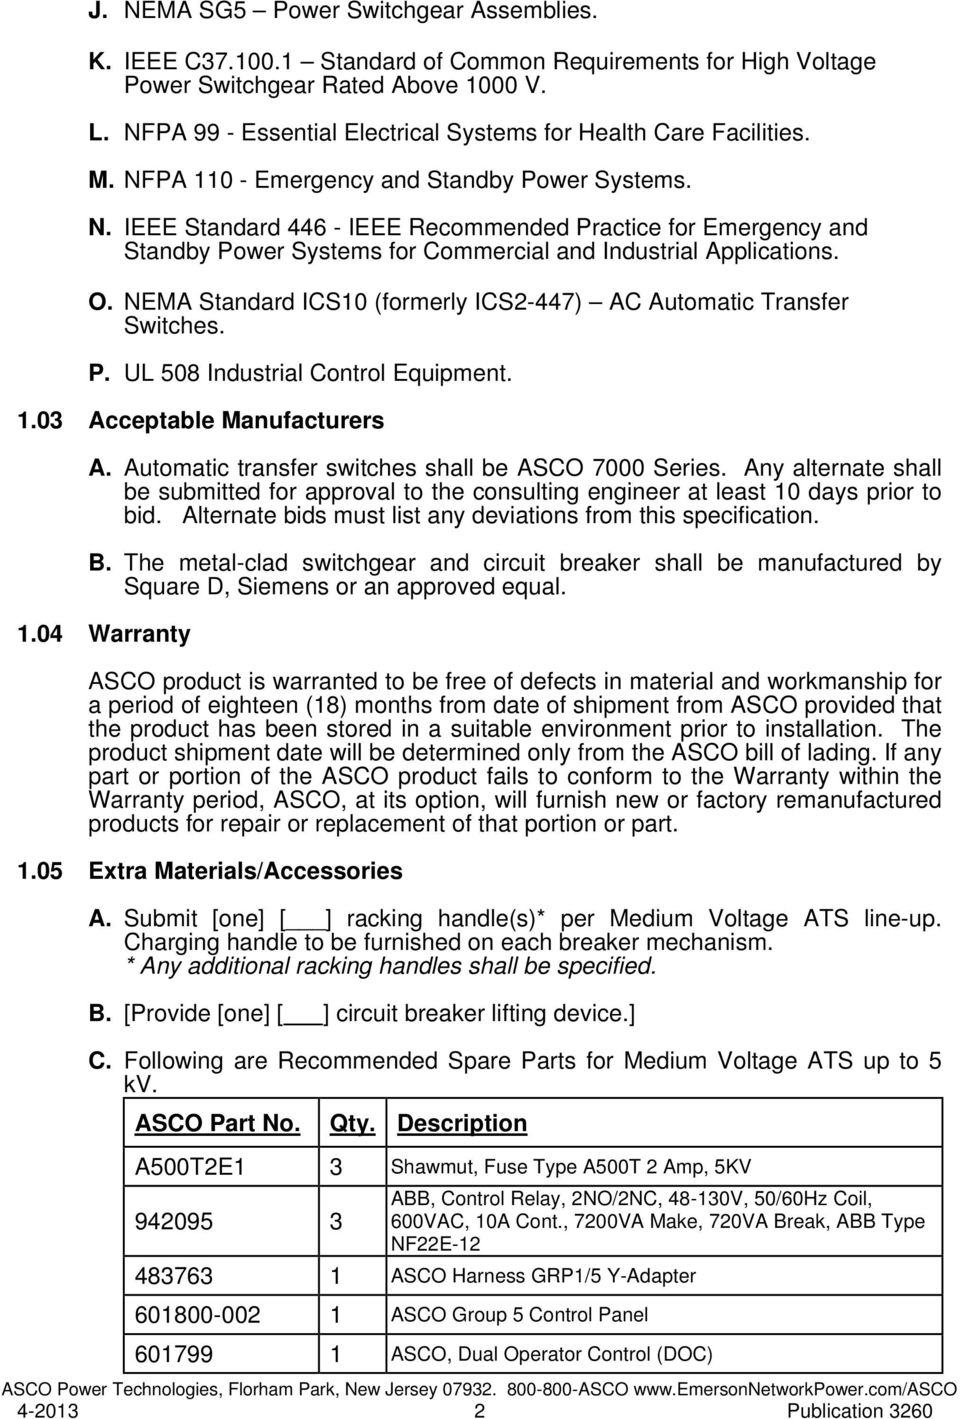 Suggested Specification For Medium Voltage Automatic Transfer Asco 7000 Wiring Diagram Pa 110 Emergency And Standby Power Systems N Ieee Standard 446